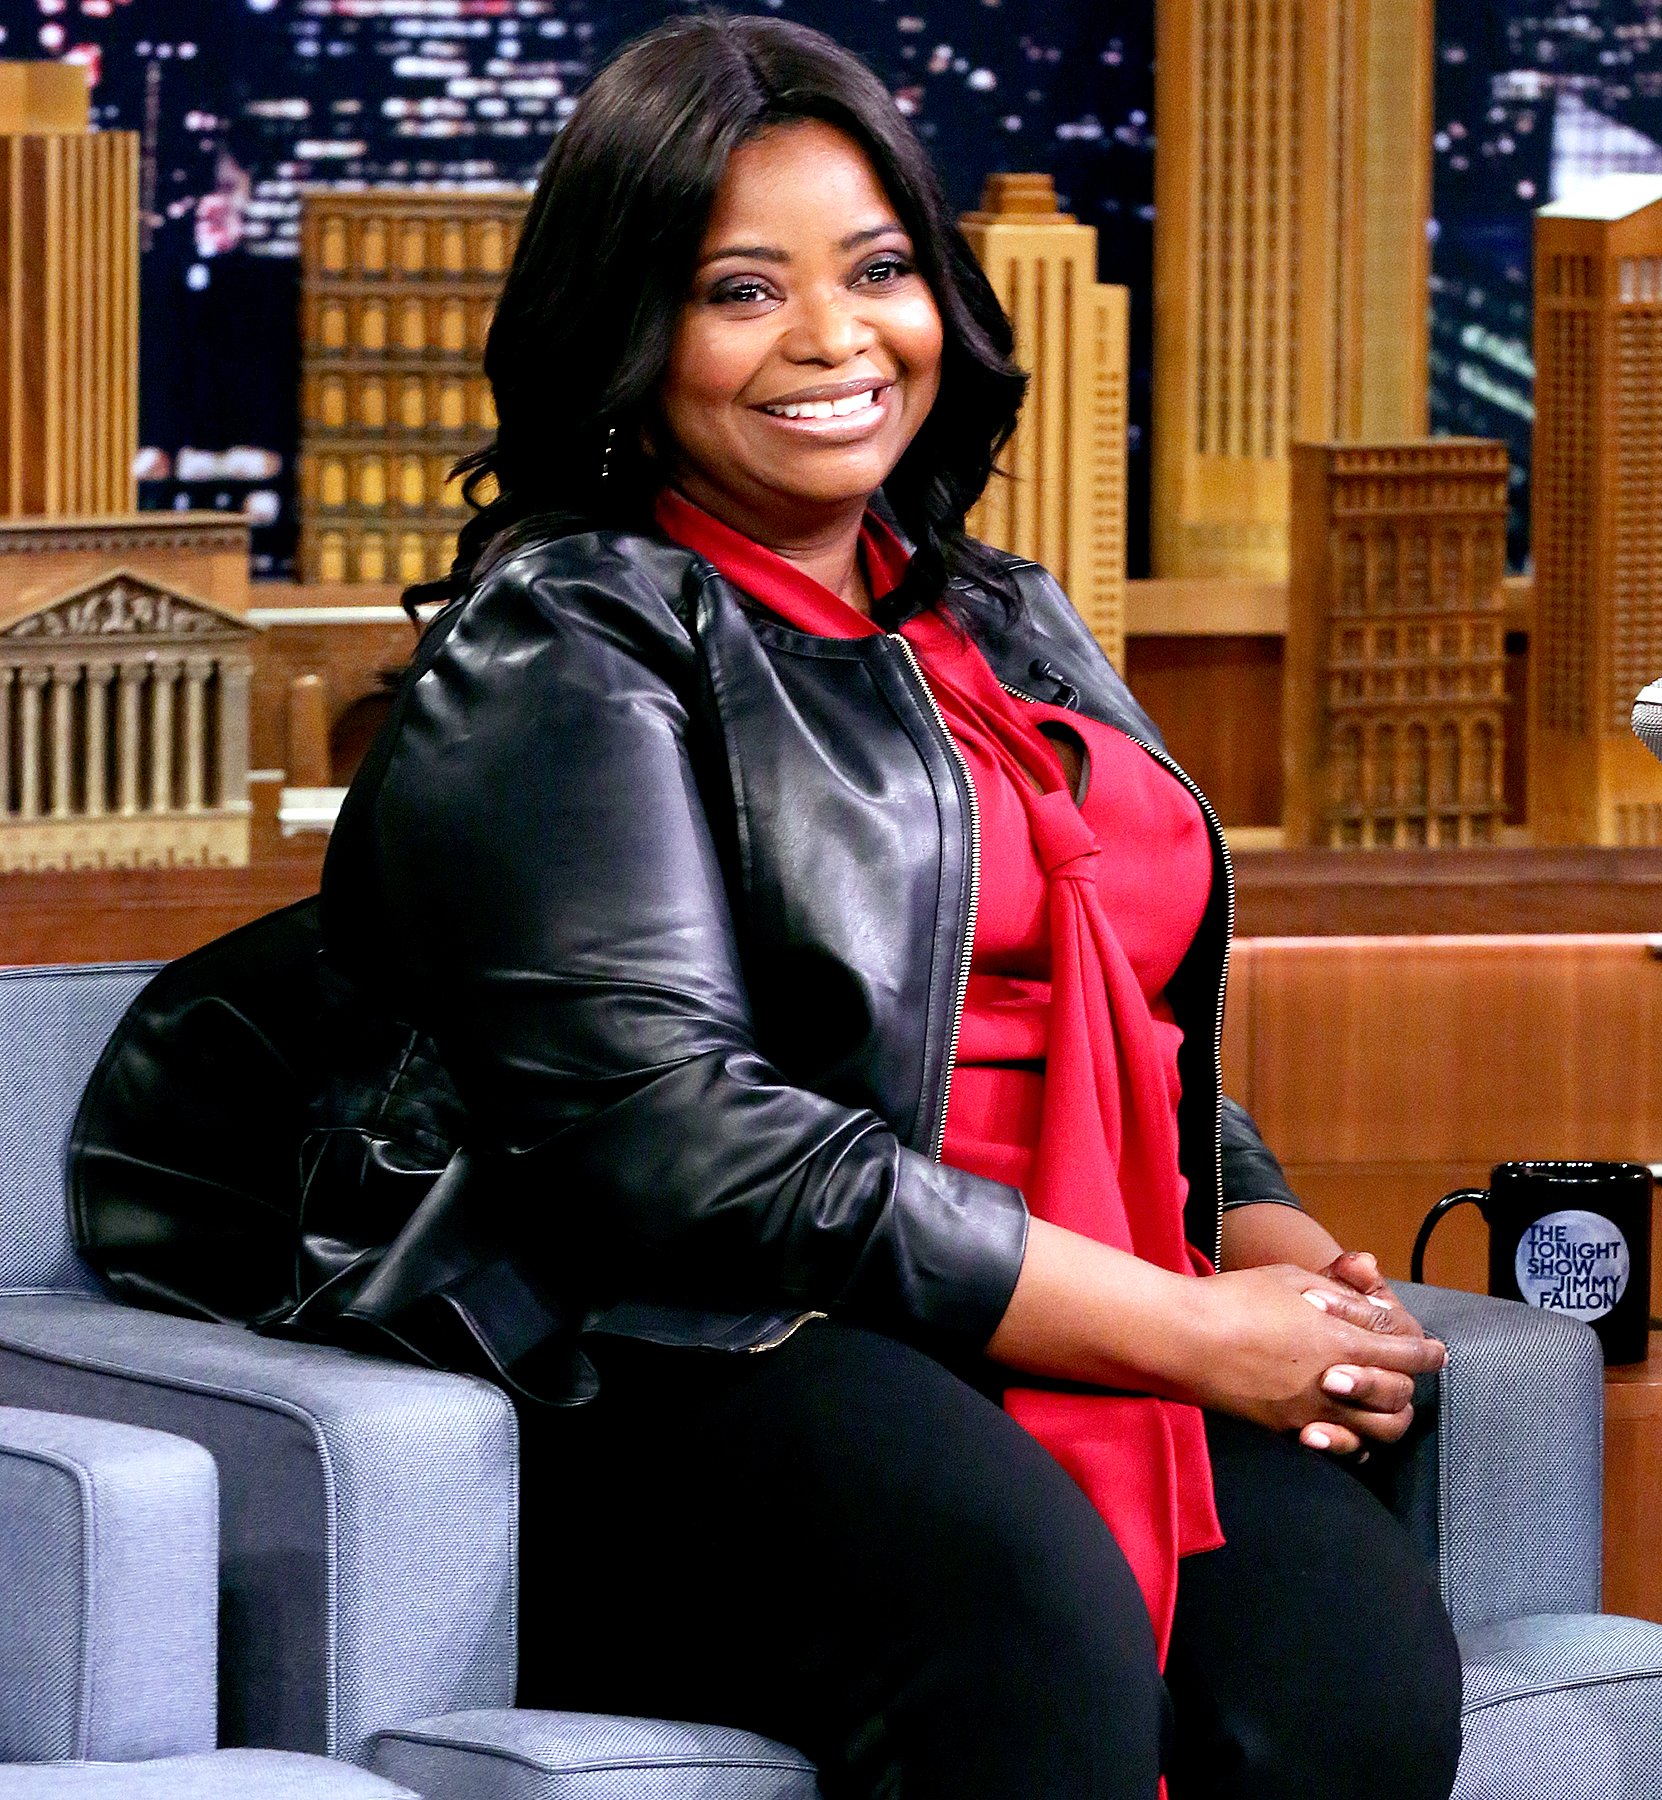 Octavia Spencer during an interview on The Tonight Show with Jimmy Fallon, March 2, 2017